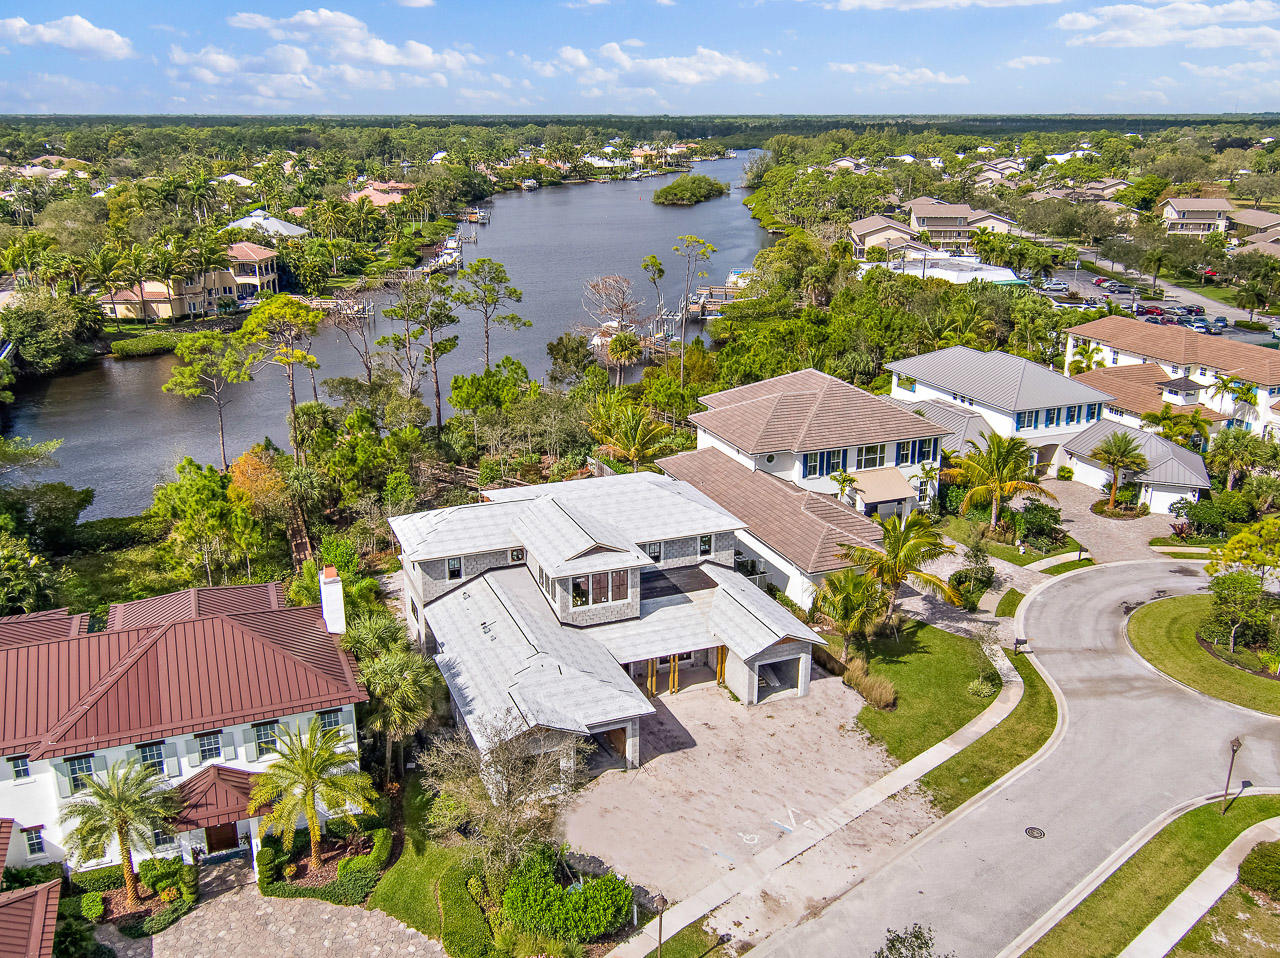 New Home for sale at 18682 St Augustine Way in Tequesta